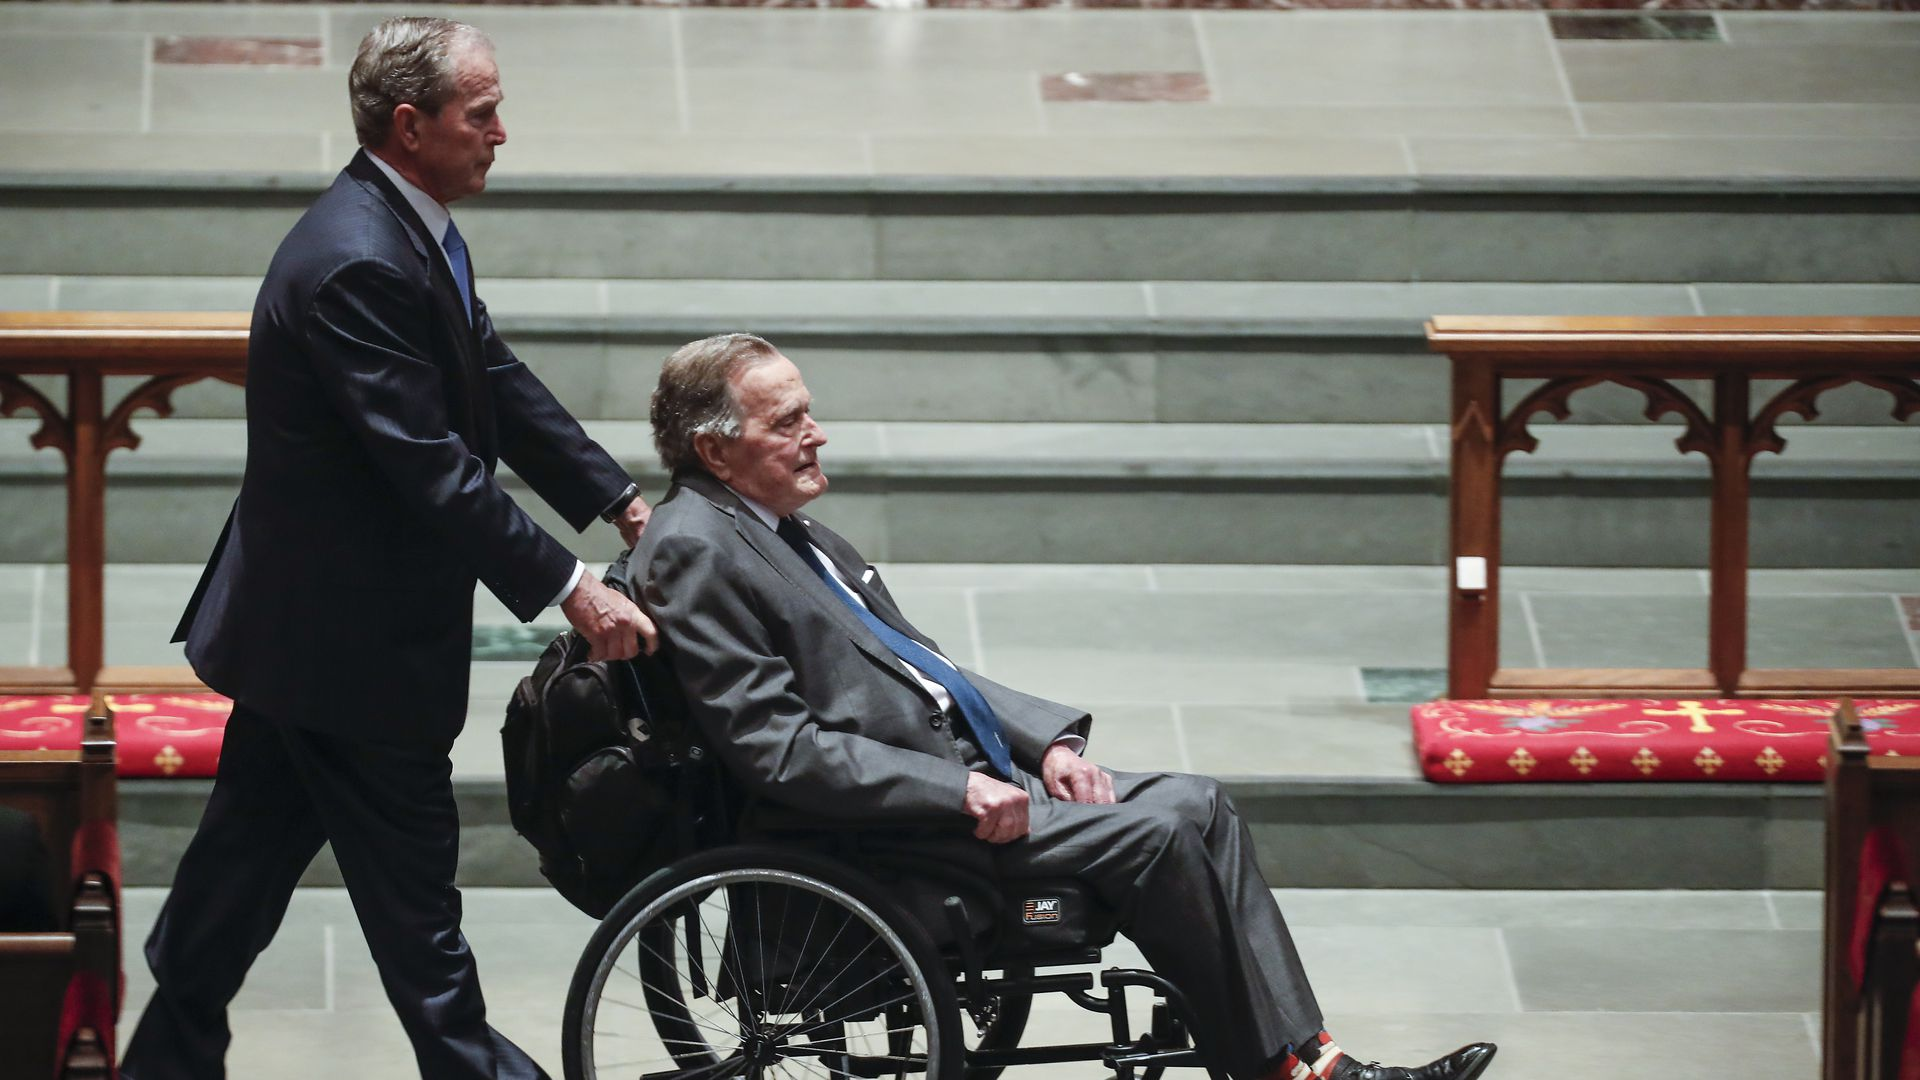 Former president George W. Bush pushes his father, George H.W. Bush, in a wheelchair at Barbara Bush's funeral